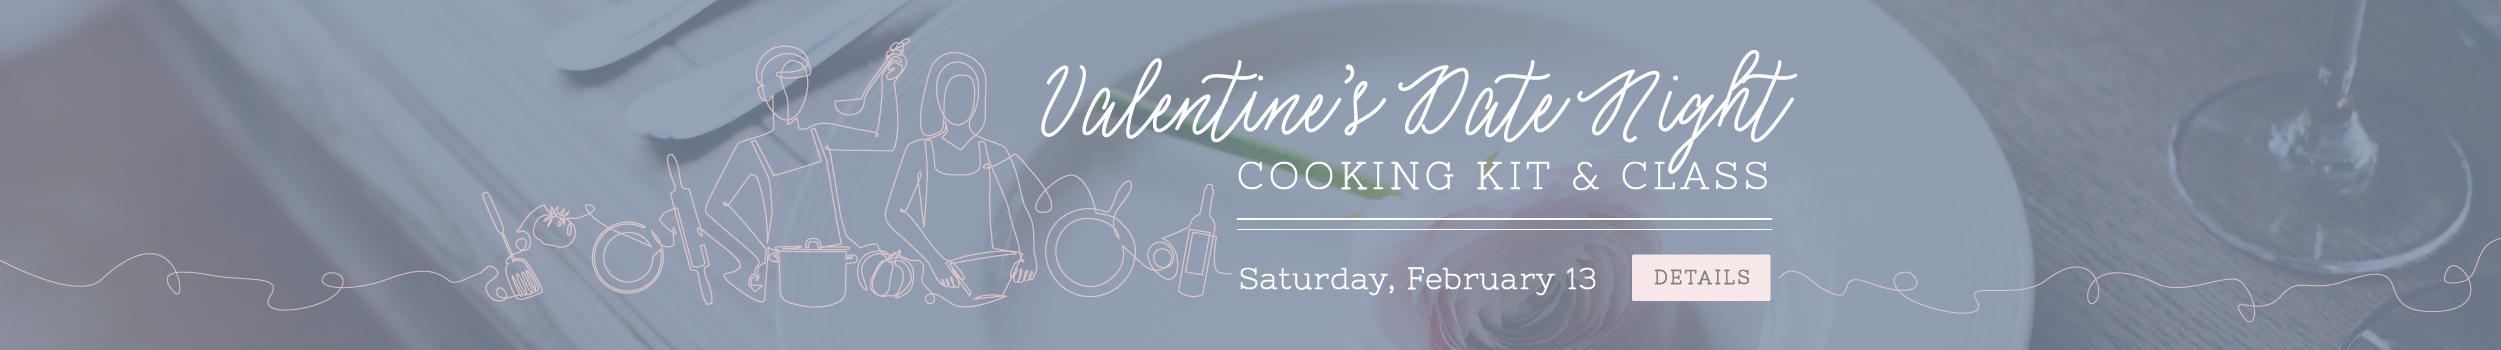 Valentine's Date Night Cooking Kit & Class by Middleground Farms